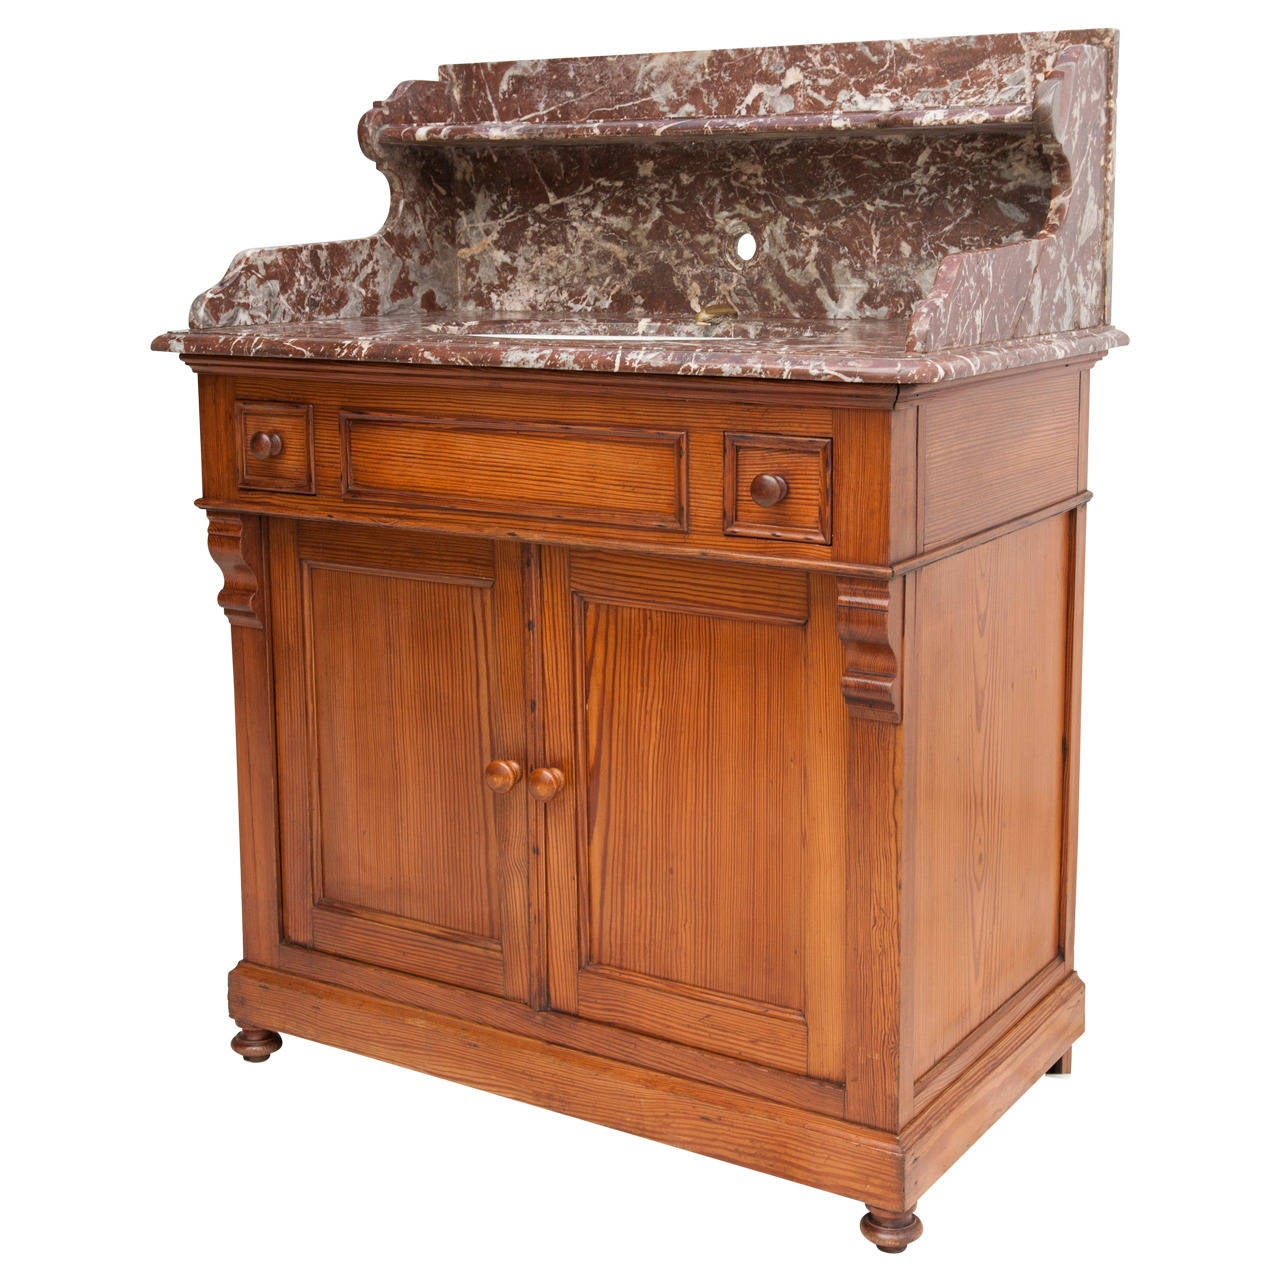 Antique French Vanity Cabinet With Marble Top And Porcelain Swivel Sink At 1stdibs